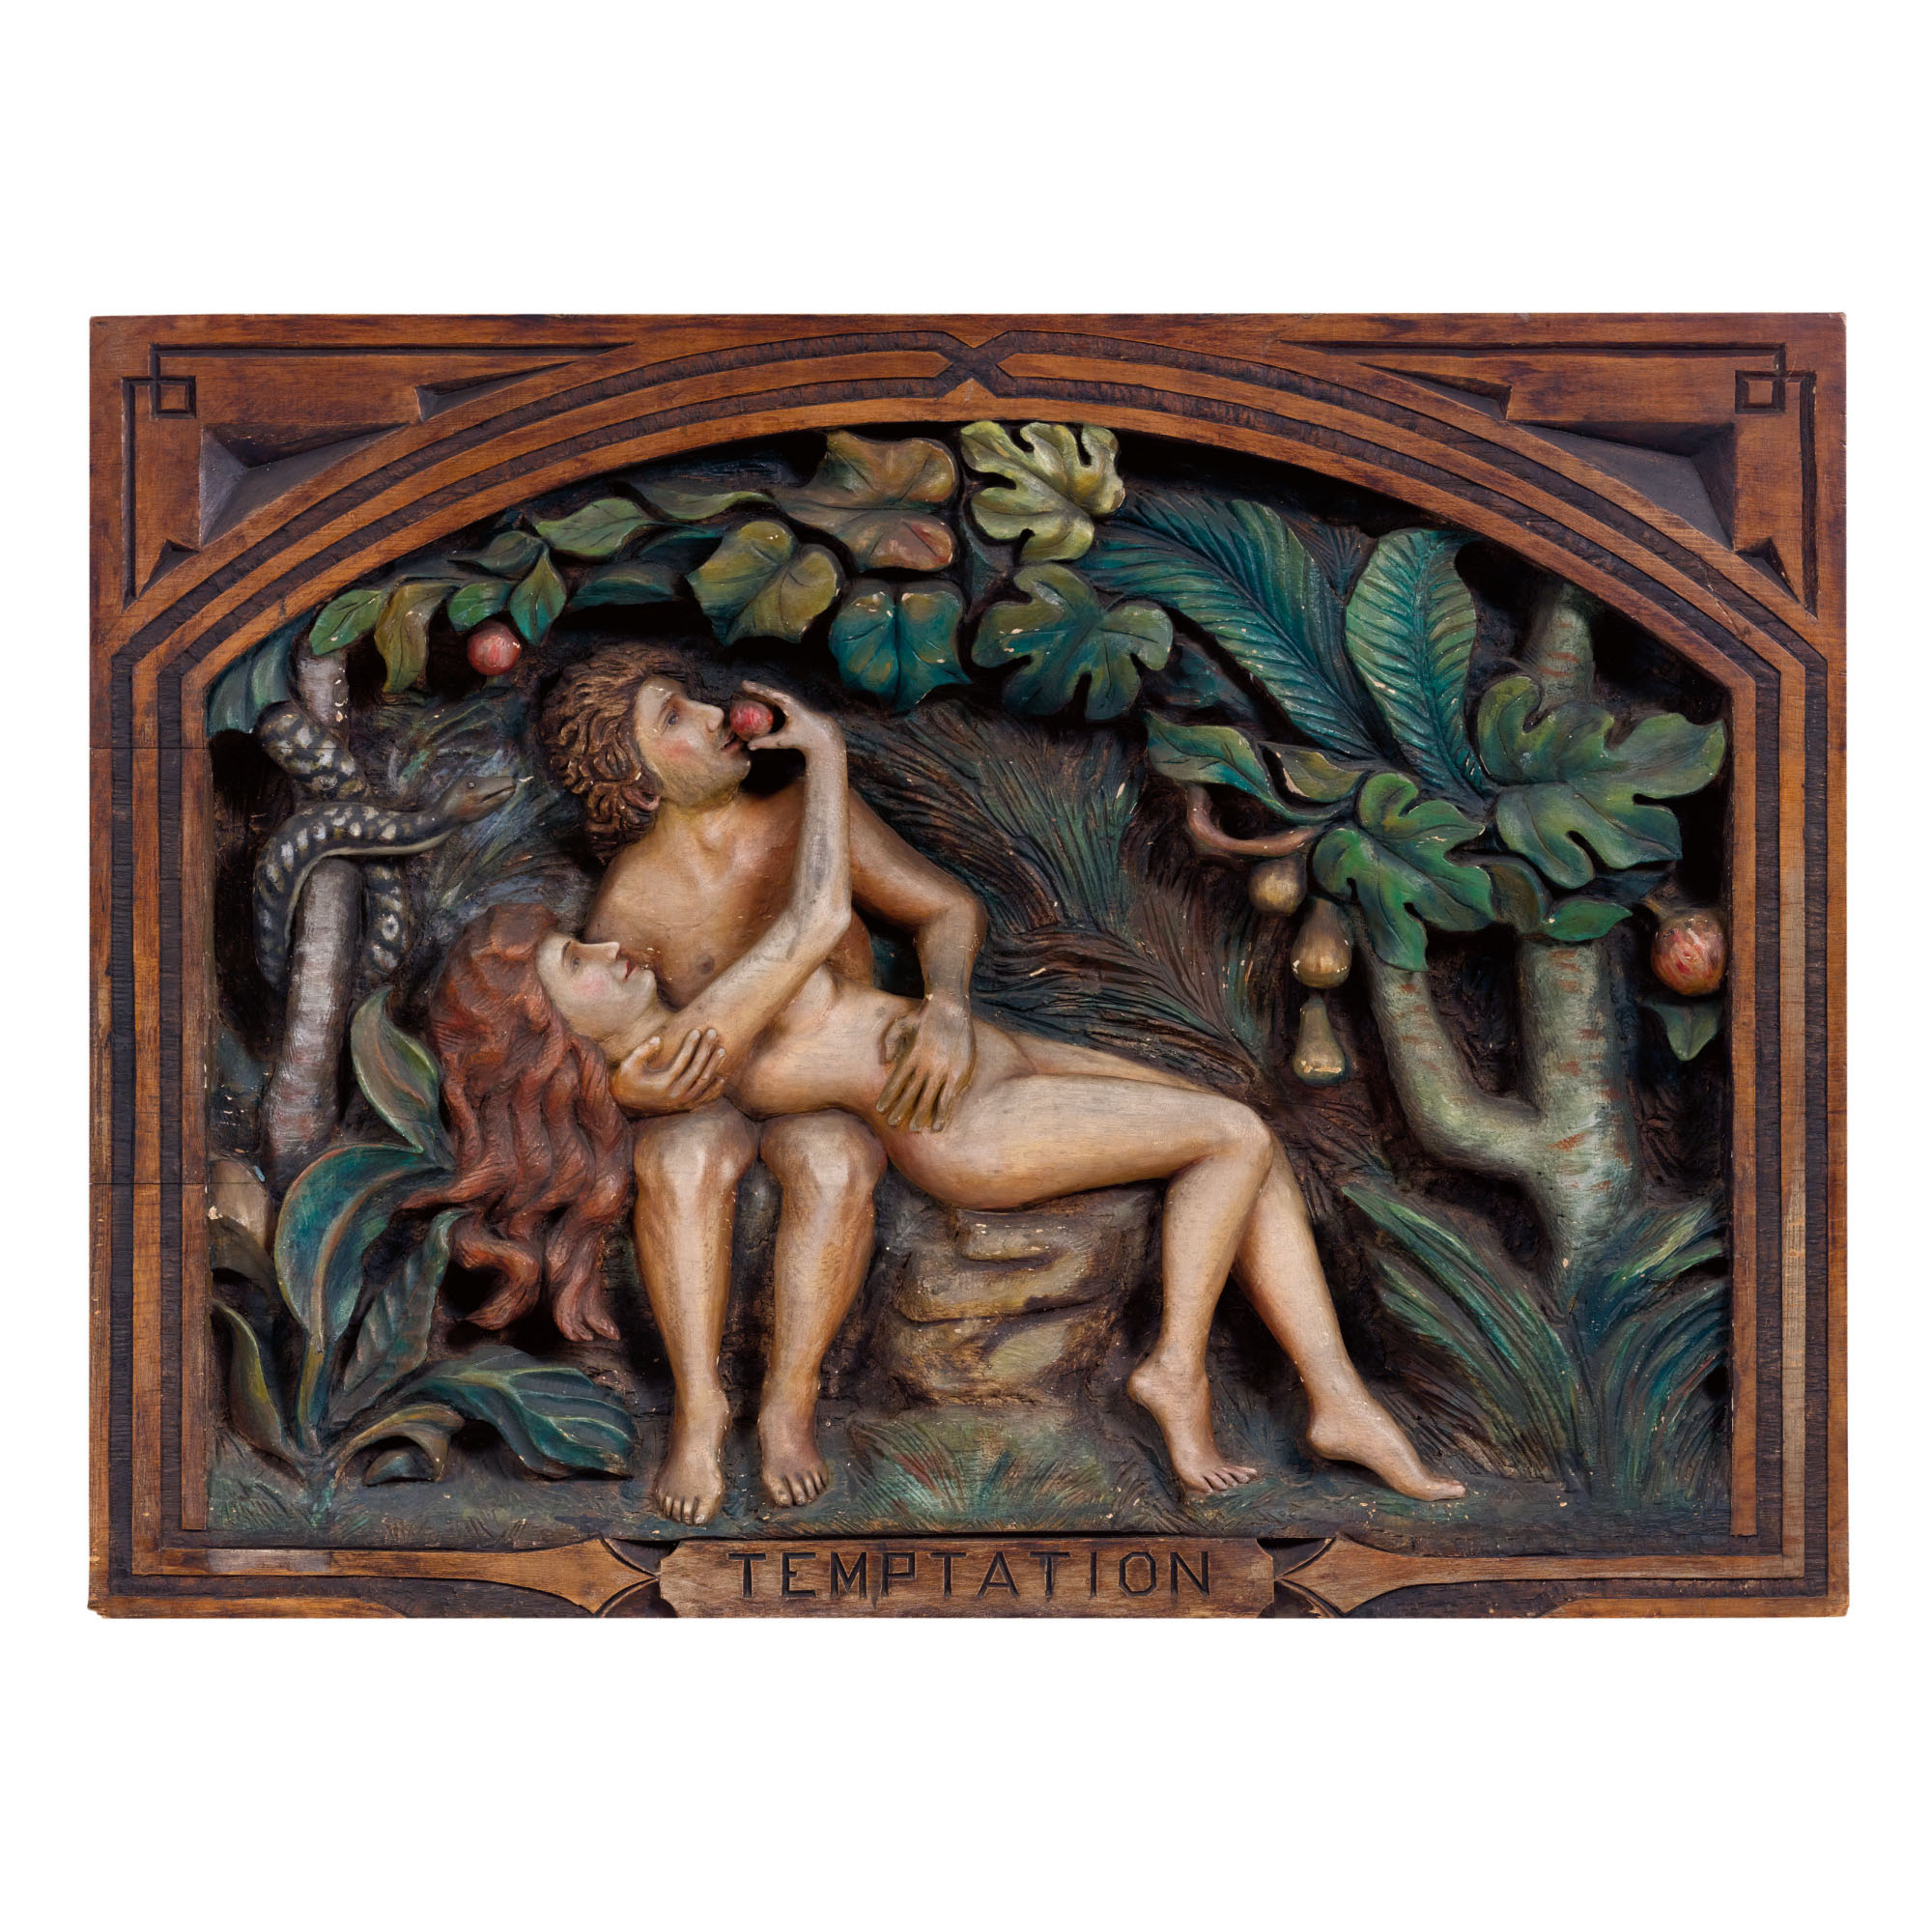 VERY FINE AND RARE CARVED AND POLYCHROME PAINT-DECORATED WOODEN PANEL OF TEMPTATION, HENRI (HENRY) BERNHARDT (B. 1870), SPARTANBURG, SOUTH CAROLINA, CIRCA 1935